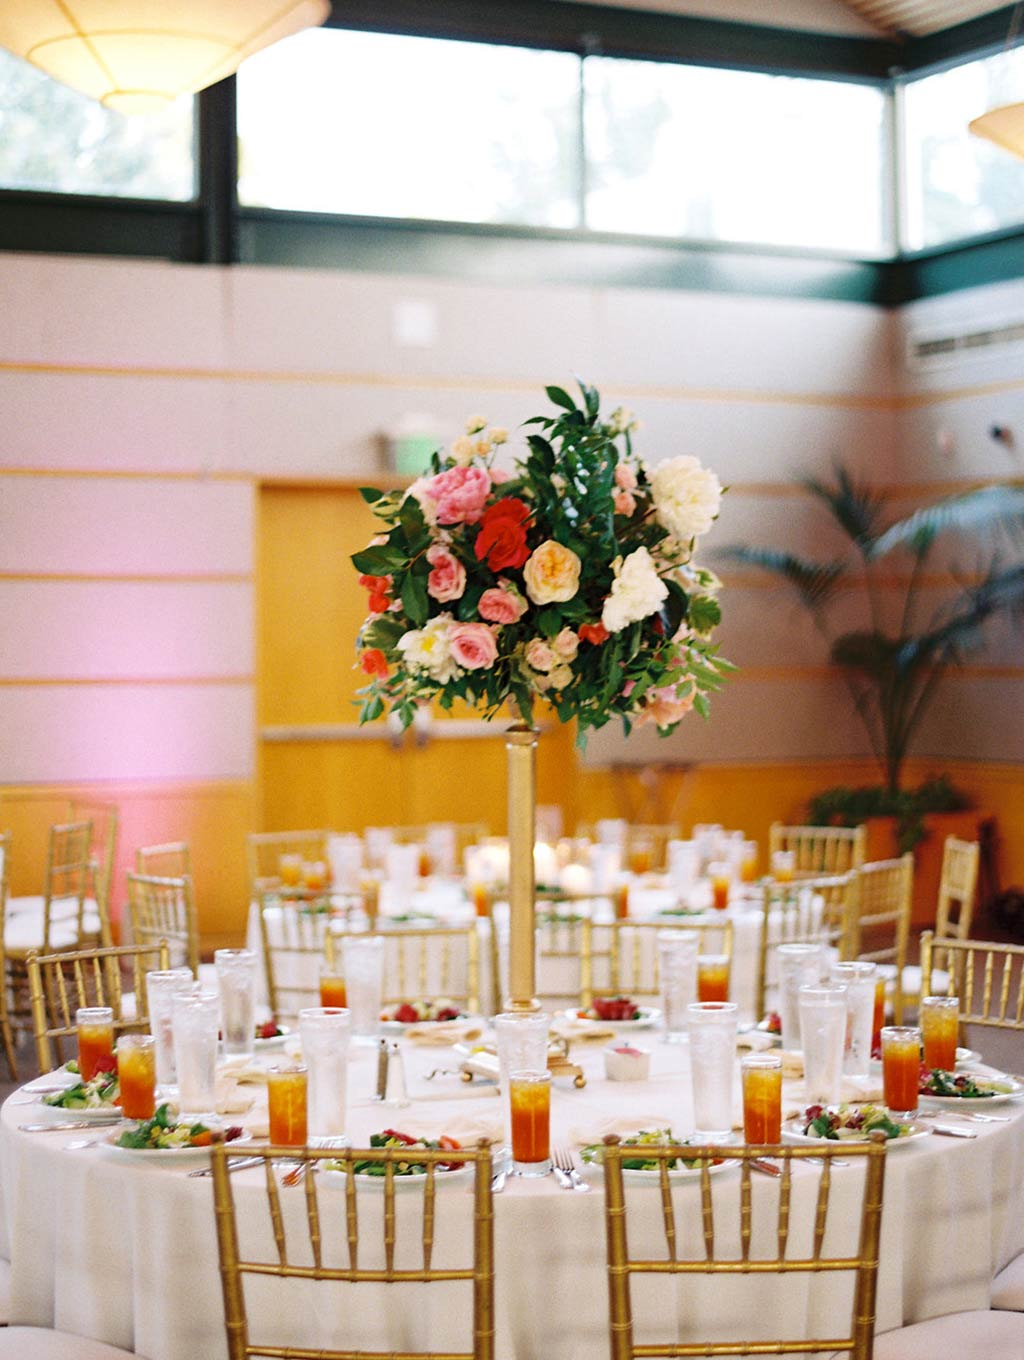 Tall round table centerpiece at wedding reception at Rosine Hall at The Dallas Arboretum